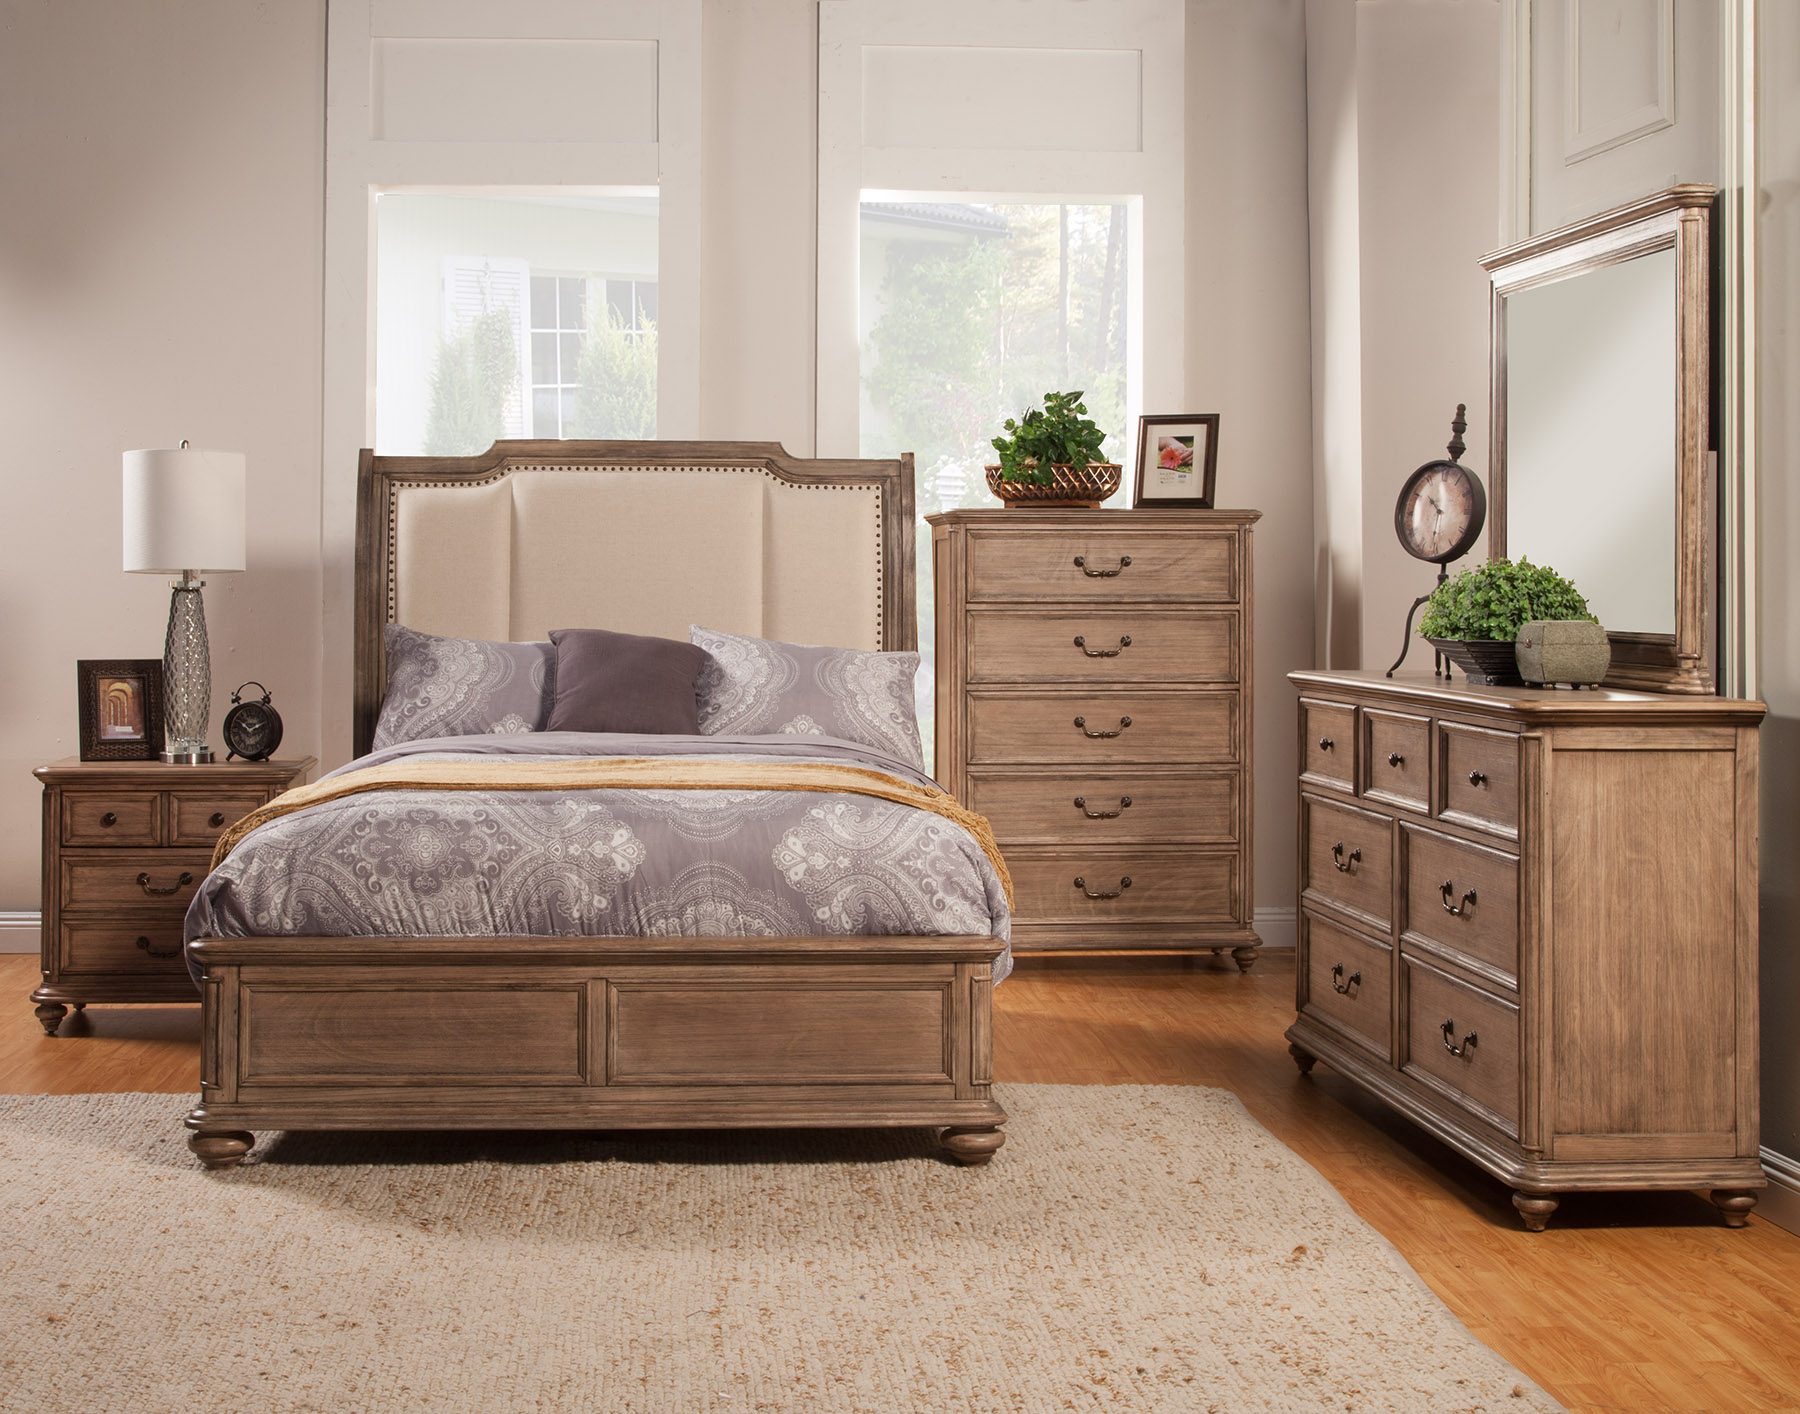 Melbourne Queen Sleigh Bed w/ Upholstered Headboard